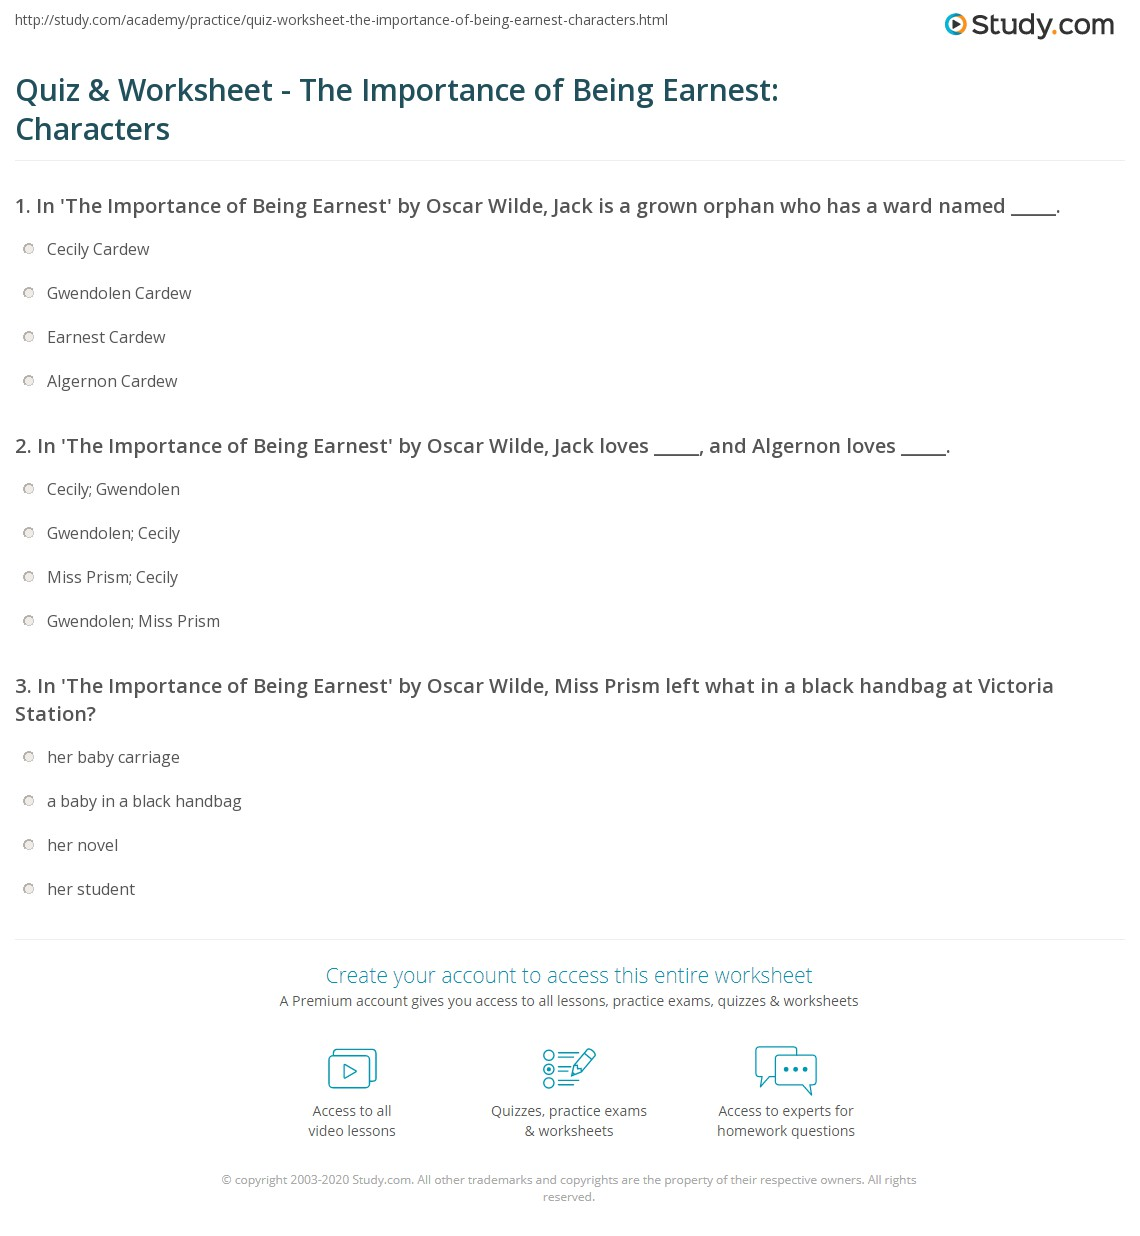 worksheet Character Review Worksheet quiz worksheet the importance of being earnest characters print in by oscar wilde worksheet